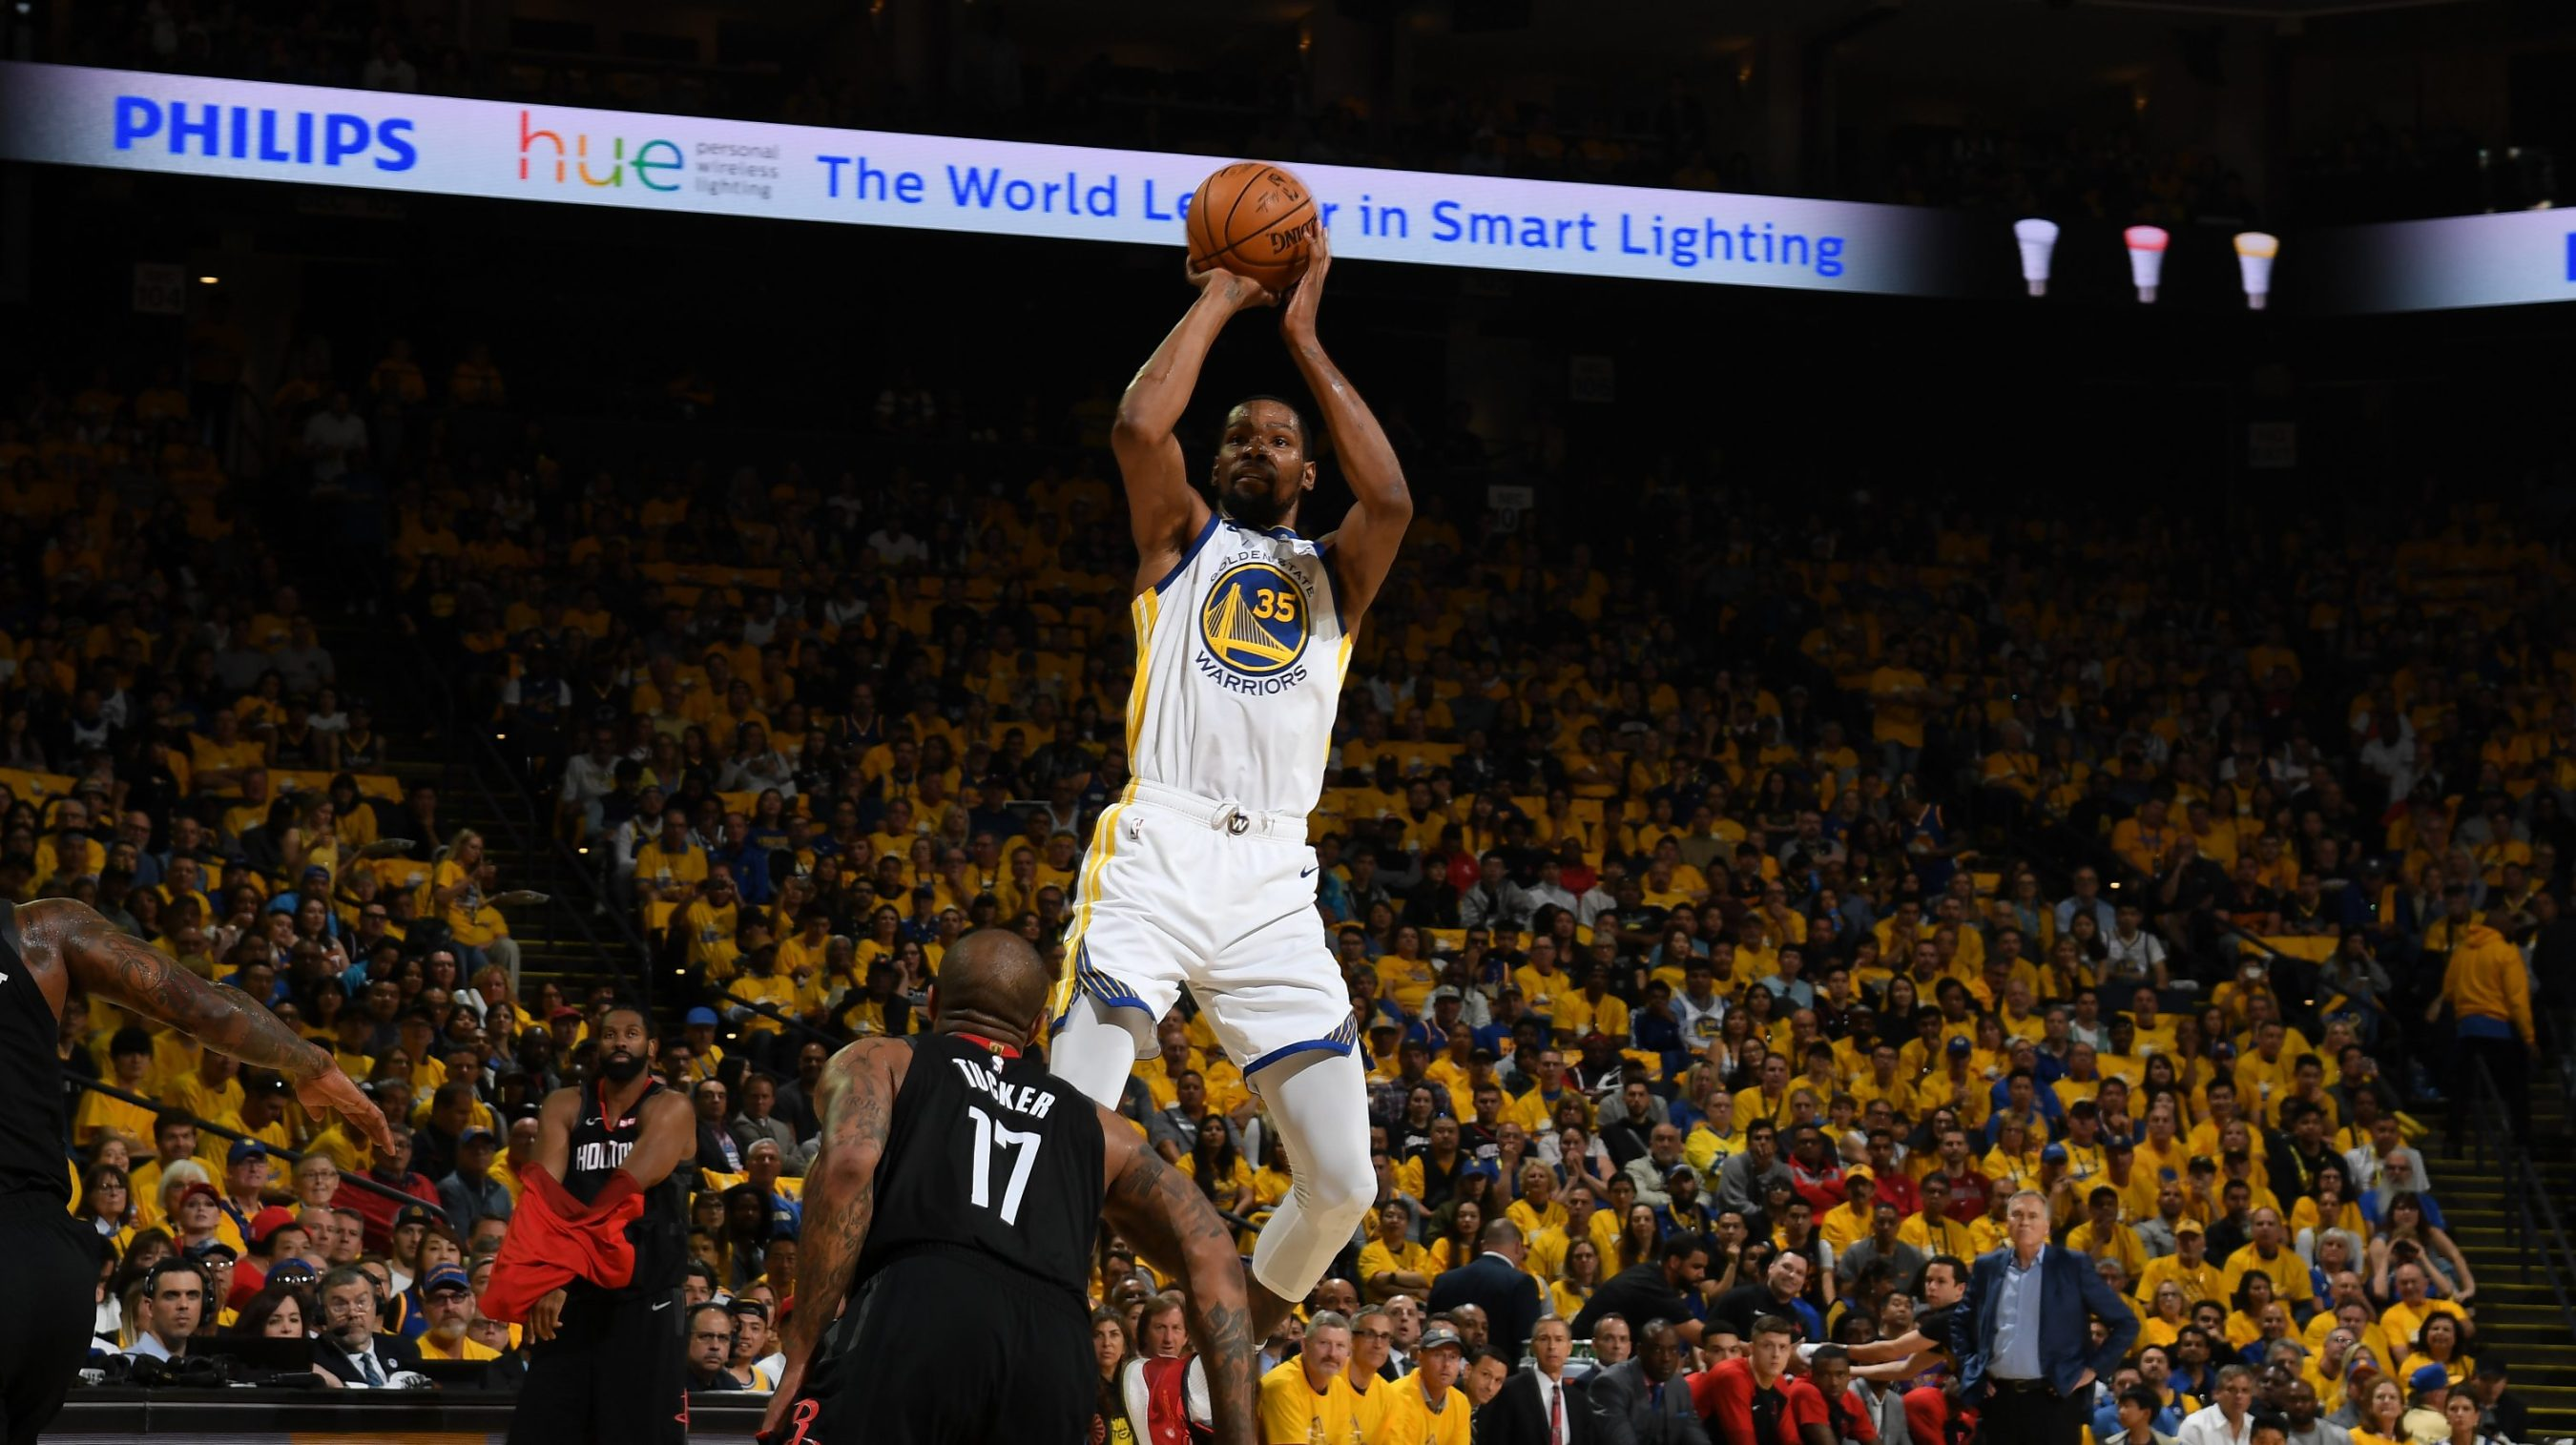 6237134fbc4 Kevin Durant is on fire, but what did you expect? He's Kevin Durant